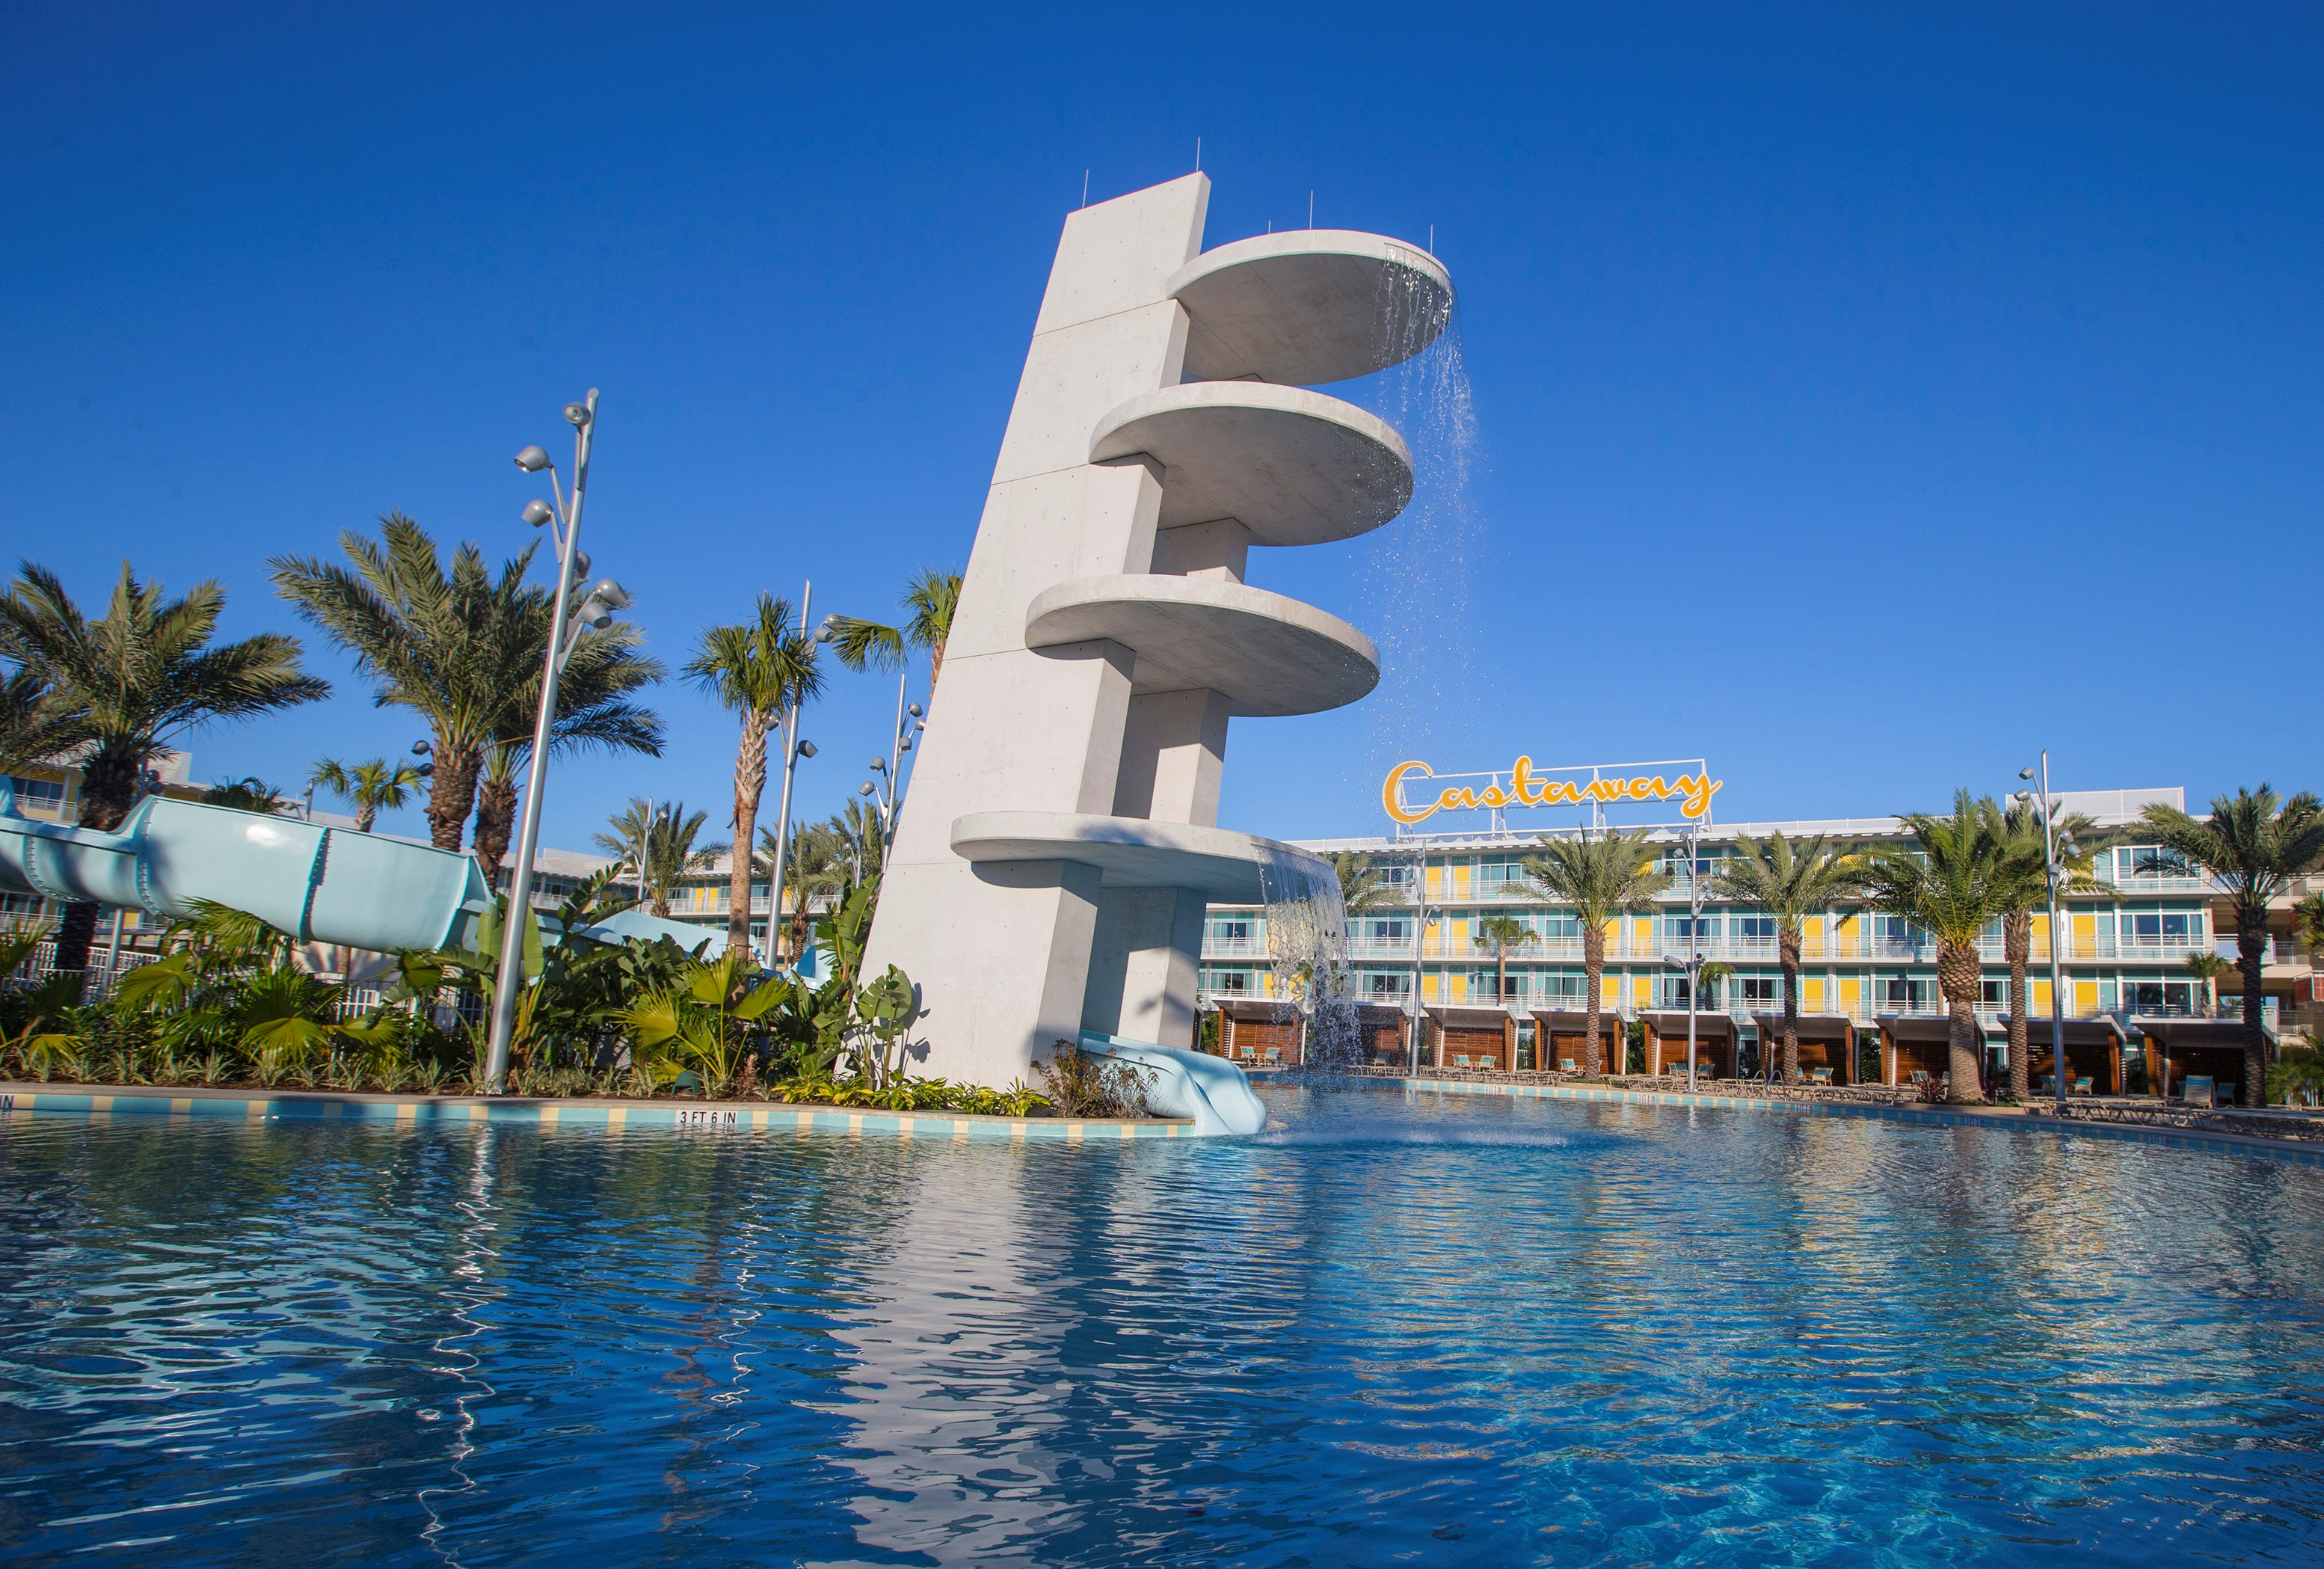 Universal Orlando S Fourth On Site Hotel Cabana Bay Beach Resort Is Now Open The Retro Inspired Features Incredible Amenities For